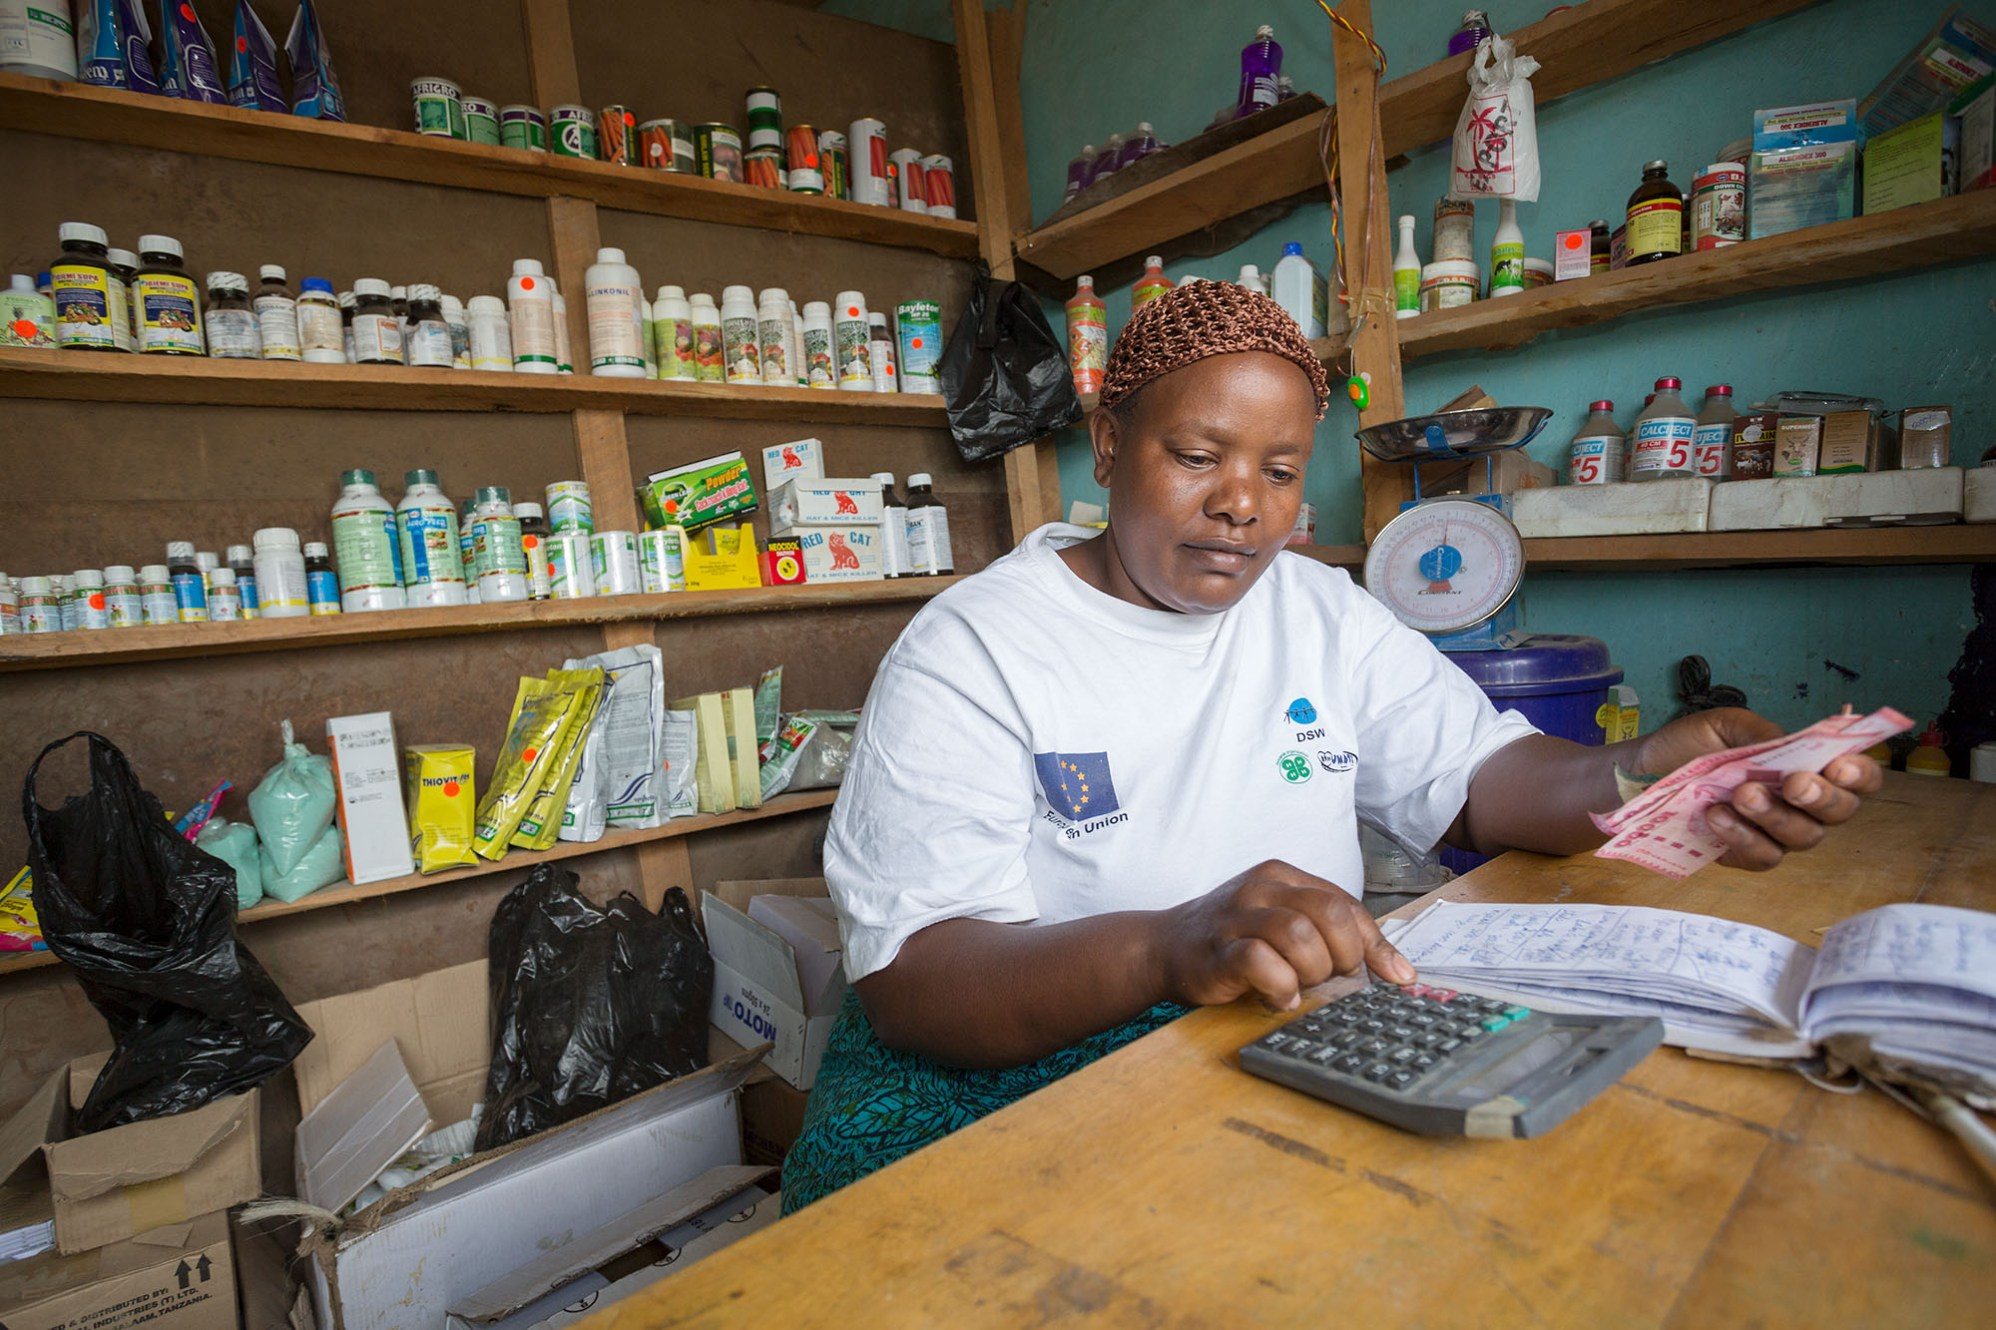 A woman works in an agricultural supplies shop in Arusha, Tanzania, East Africa.